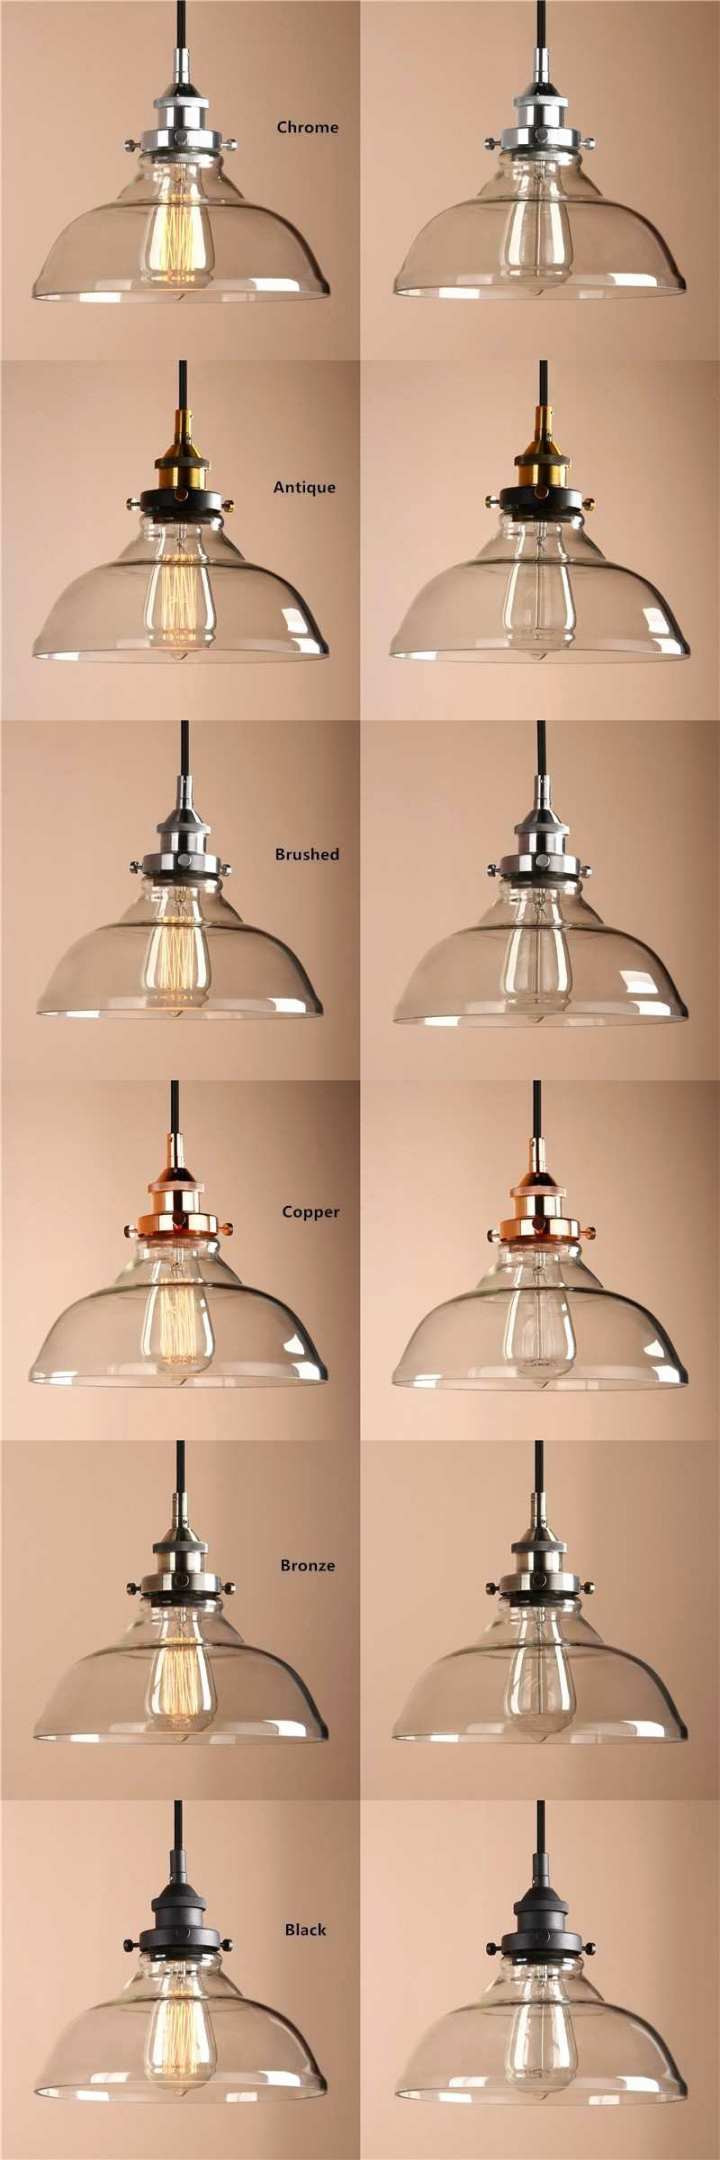 glass light bulb vase of 32 wonderful outdoor light bulbs photo outdoor furniture pertaining to outdoor light bulbs elegant pendant lighting black outdoor pendant light inspirational outdoor of 32 wonderful outdoor